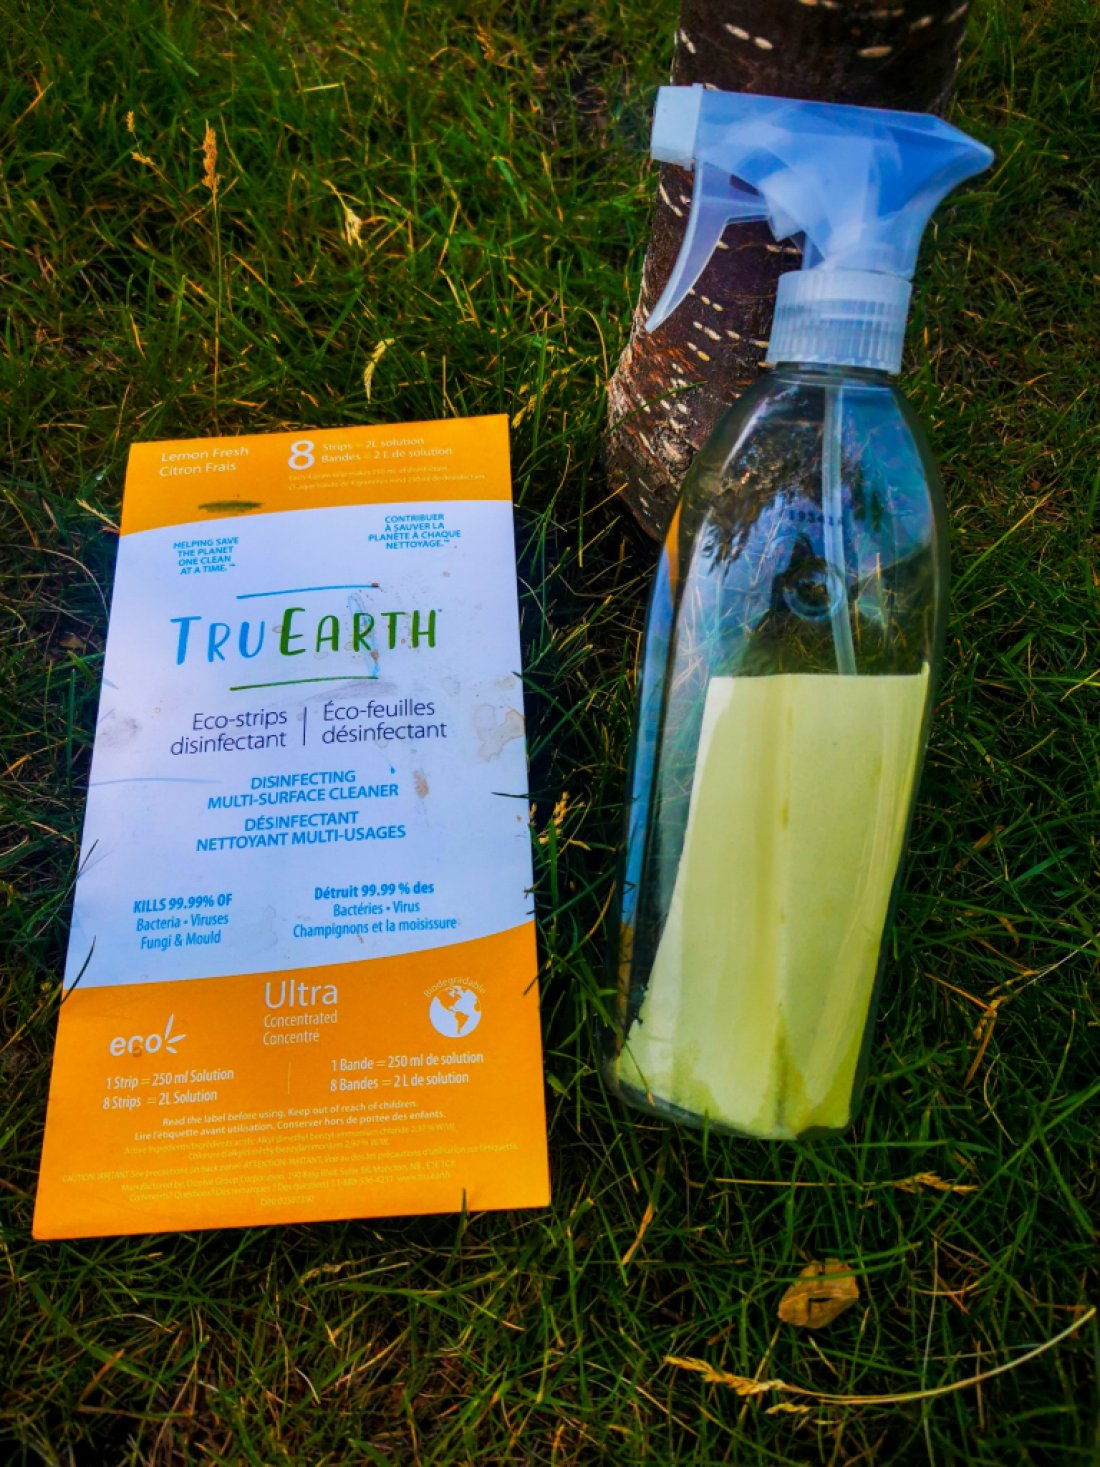 TruEarth eco-strips disinfectant